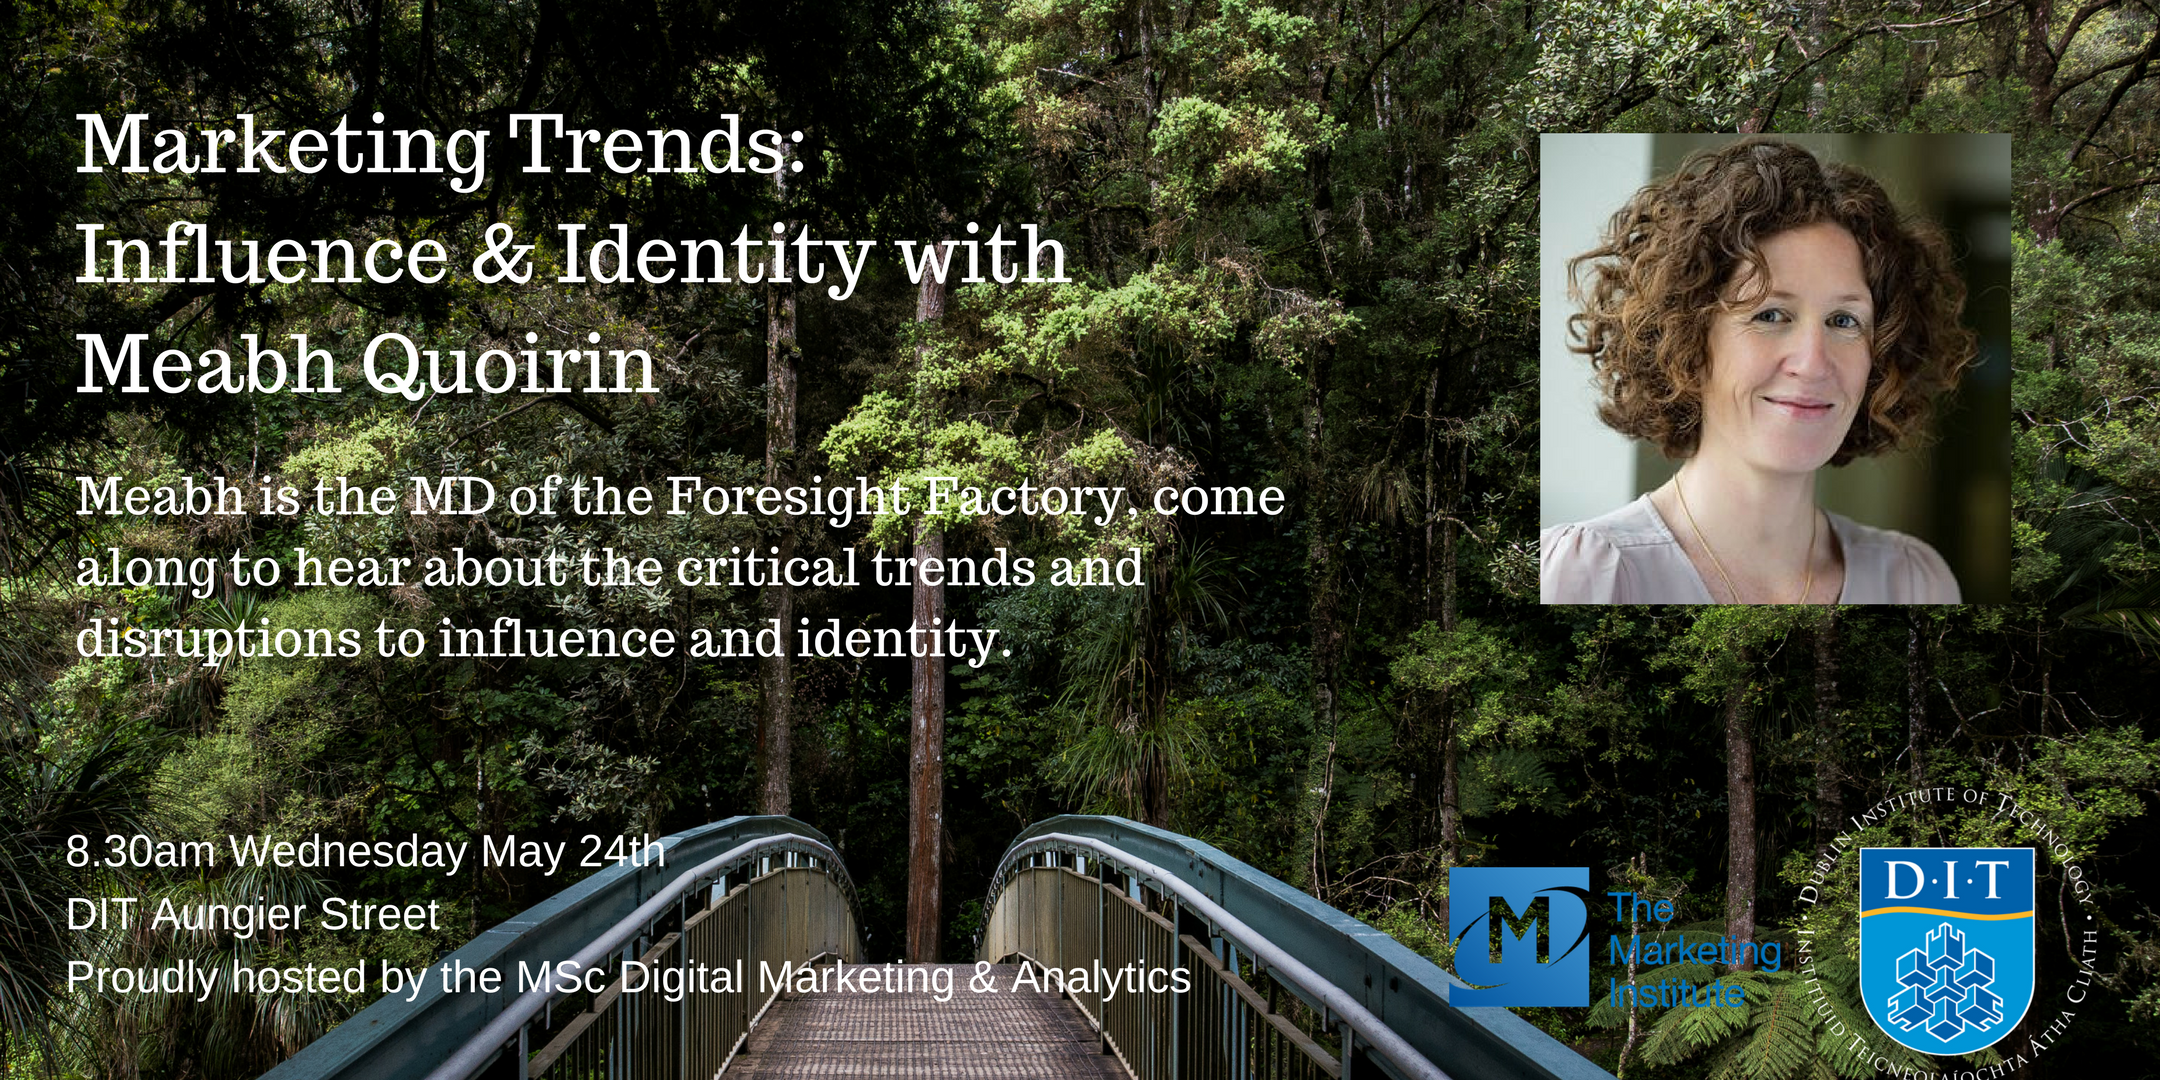 Marketing Trends: Influence & Identity with Meabh Quoirin